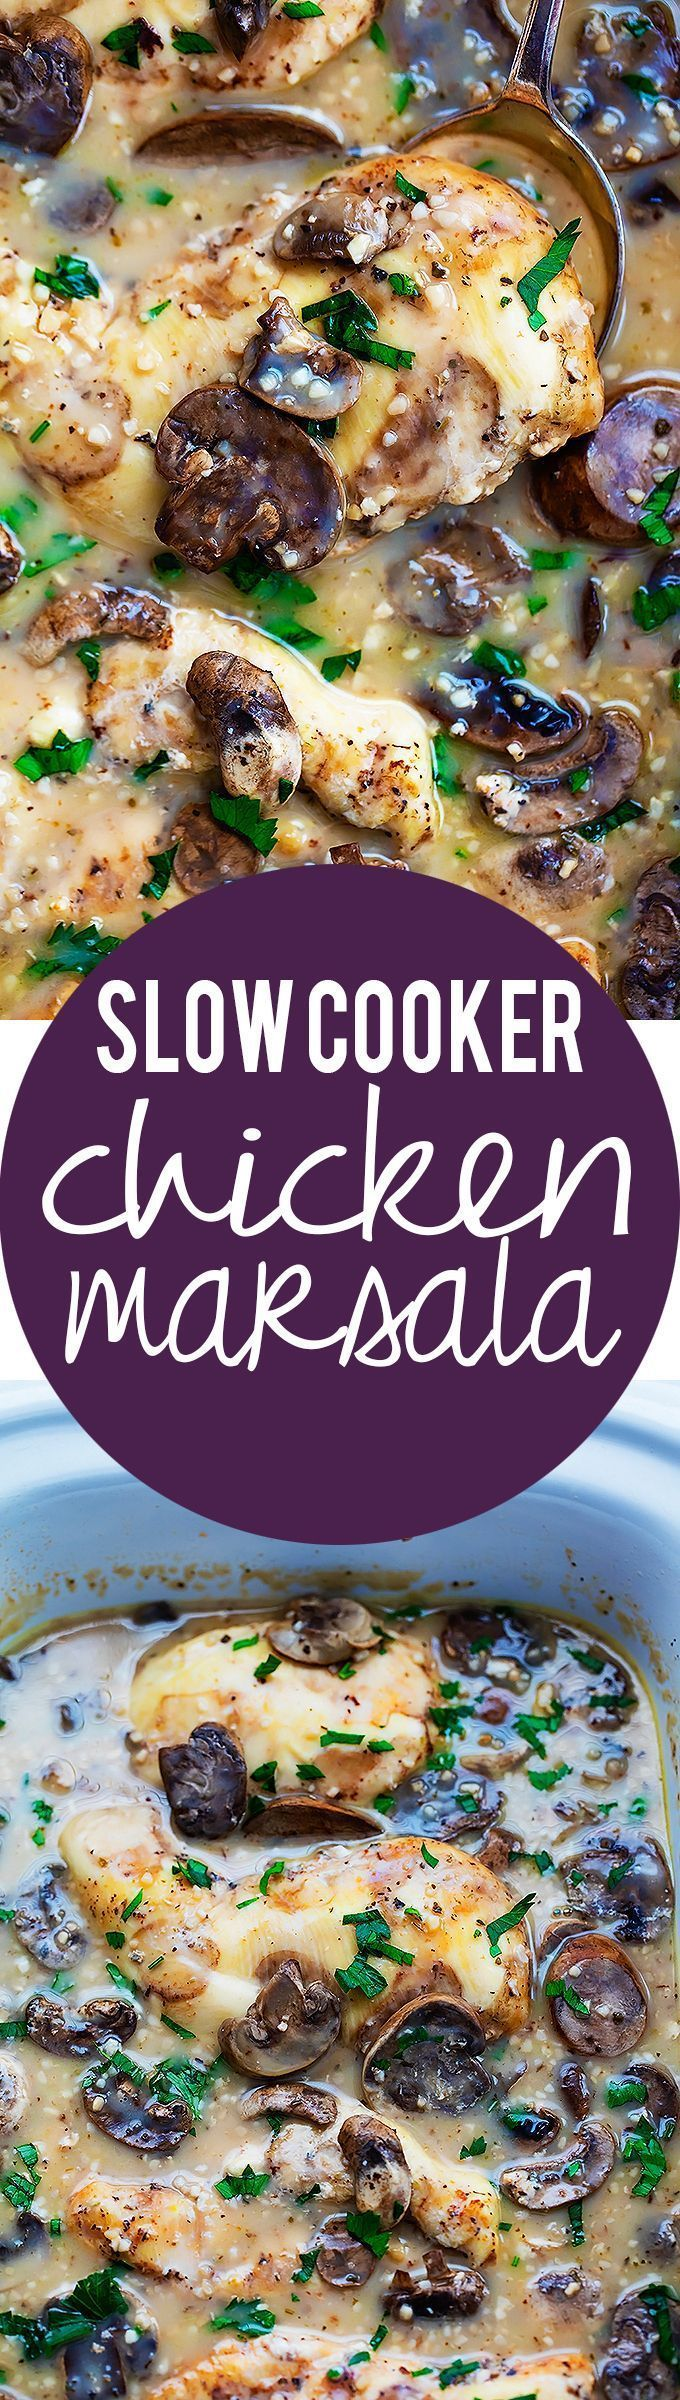 Slow Cooker Chicken - delicious!! I subbed 2T of softened butter and 1/4C of flour instead of water/cornstarch.